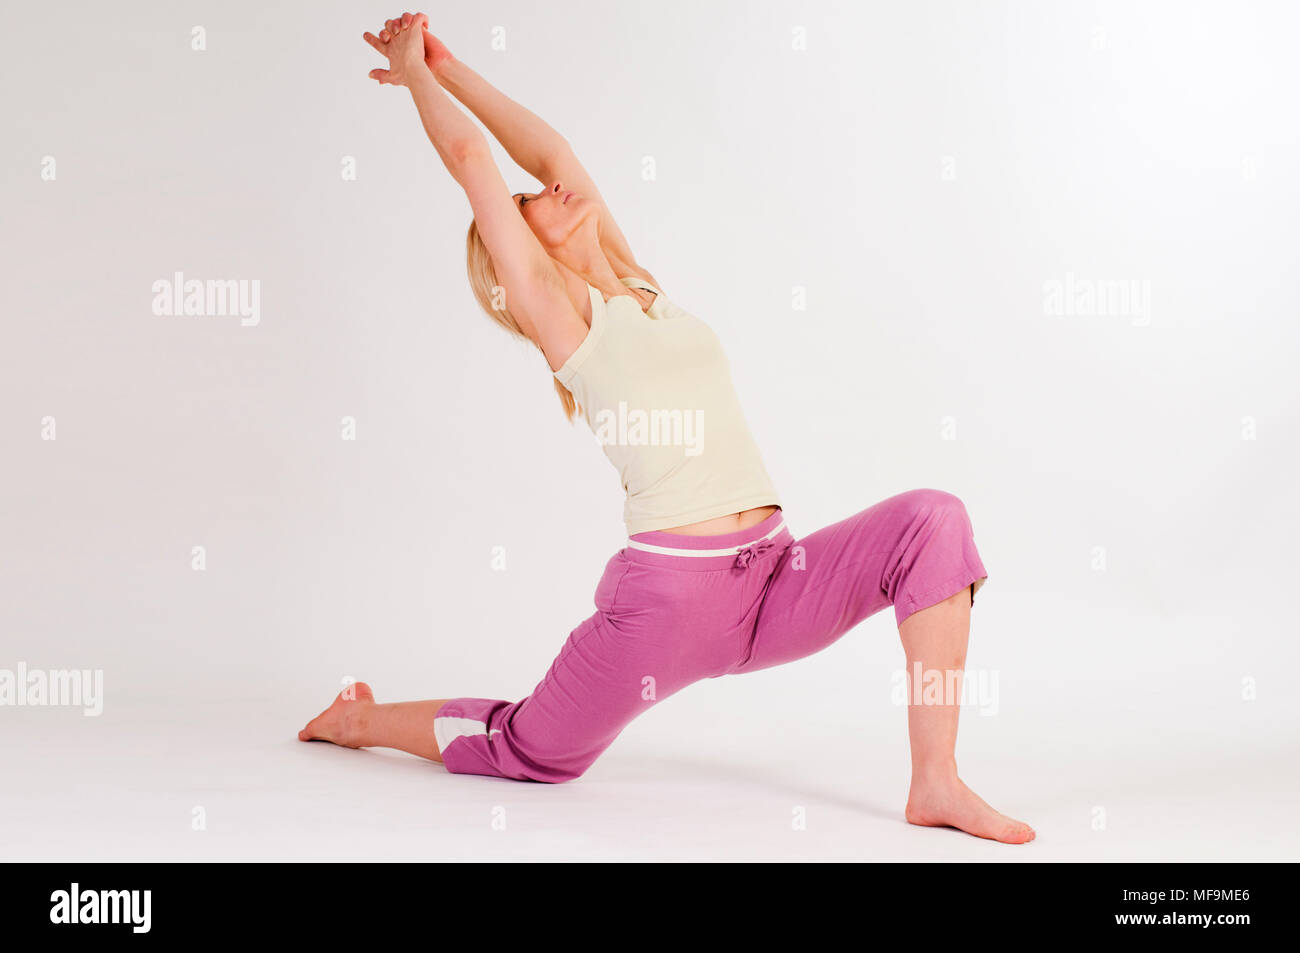 Full-body view of a young woman on white background representing the yoga position The Moon. - Stock Image